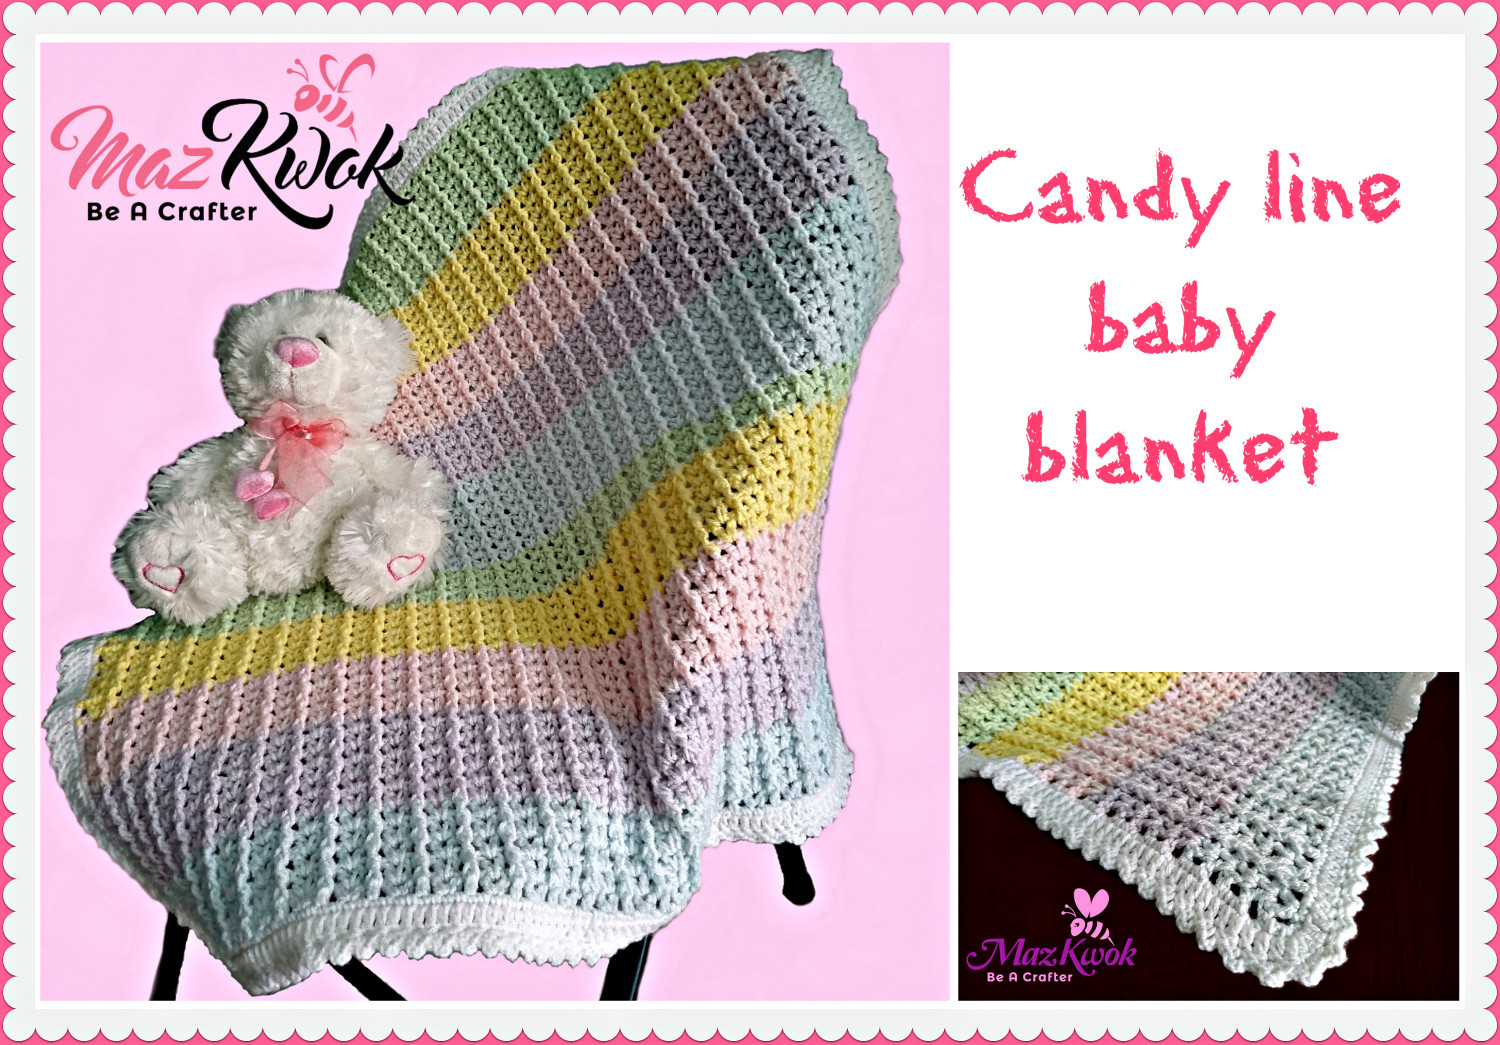 Awesome Crochet Candy Line Baby Blanket Crochet Baby Blanket Light Weight Yarn Crochet Patterns Of Awesome 40 Pics Light Weight Yarn Crochet Patterns